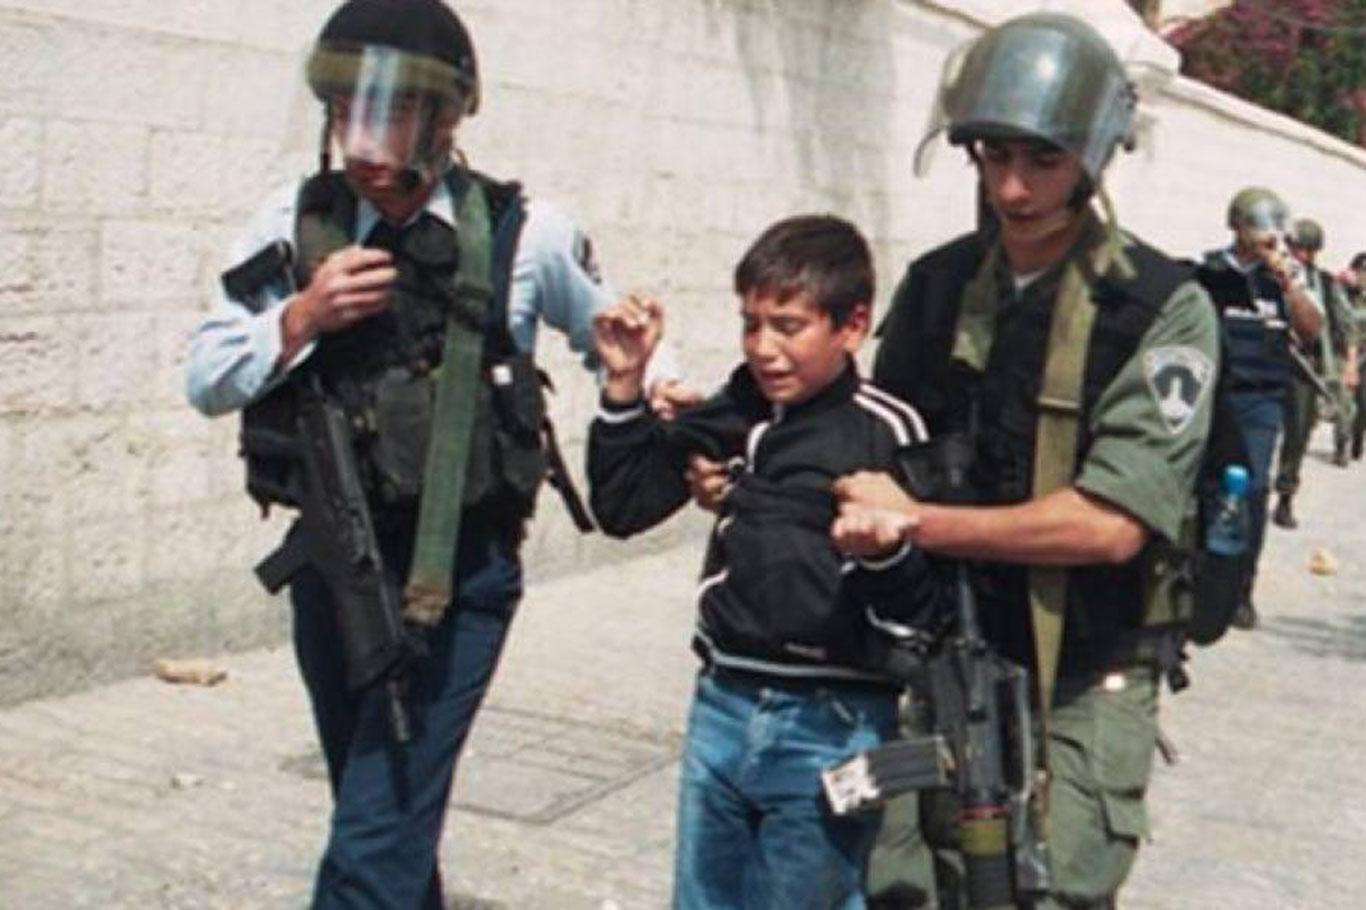 Israel killed more than 3,000 Palestinian children since Second Intifada